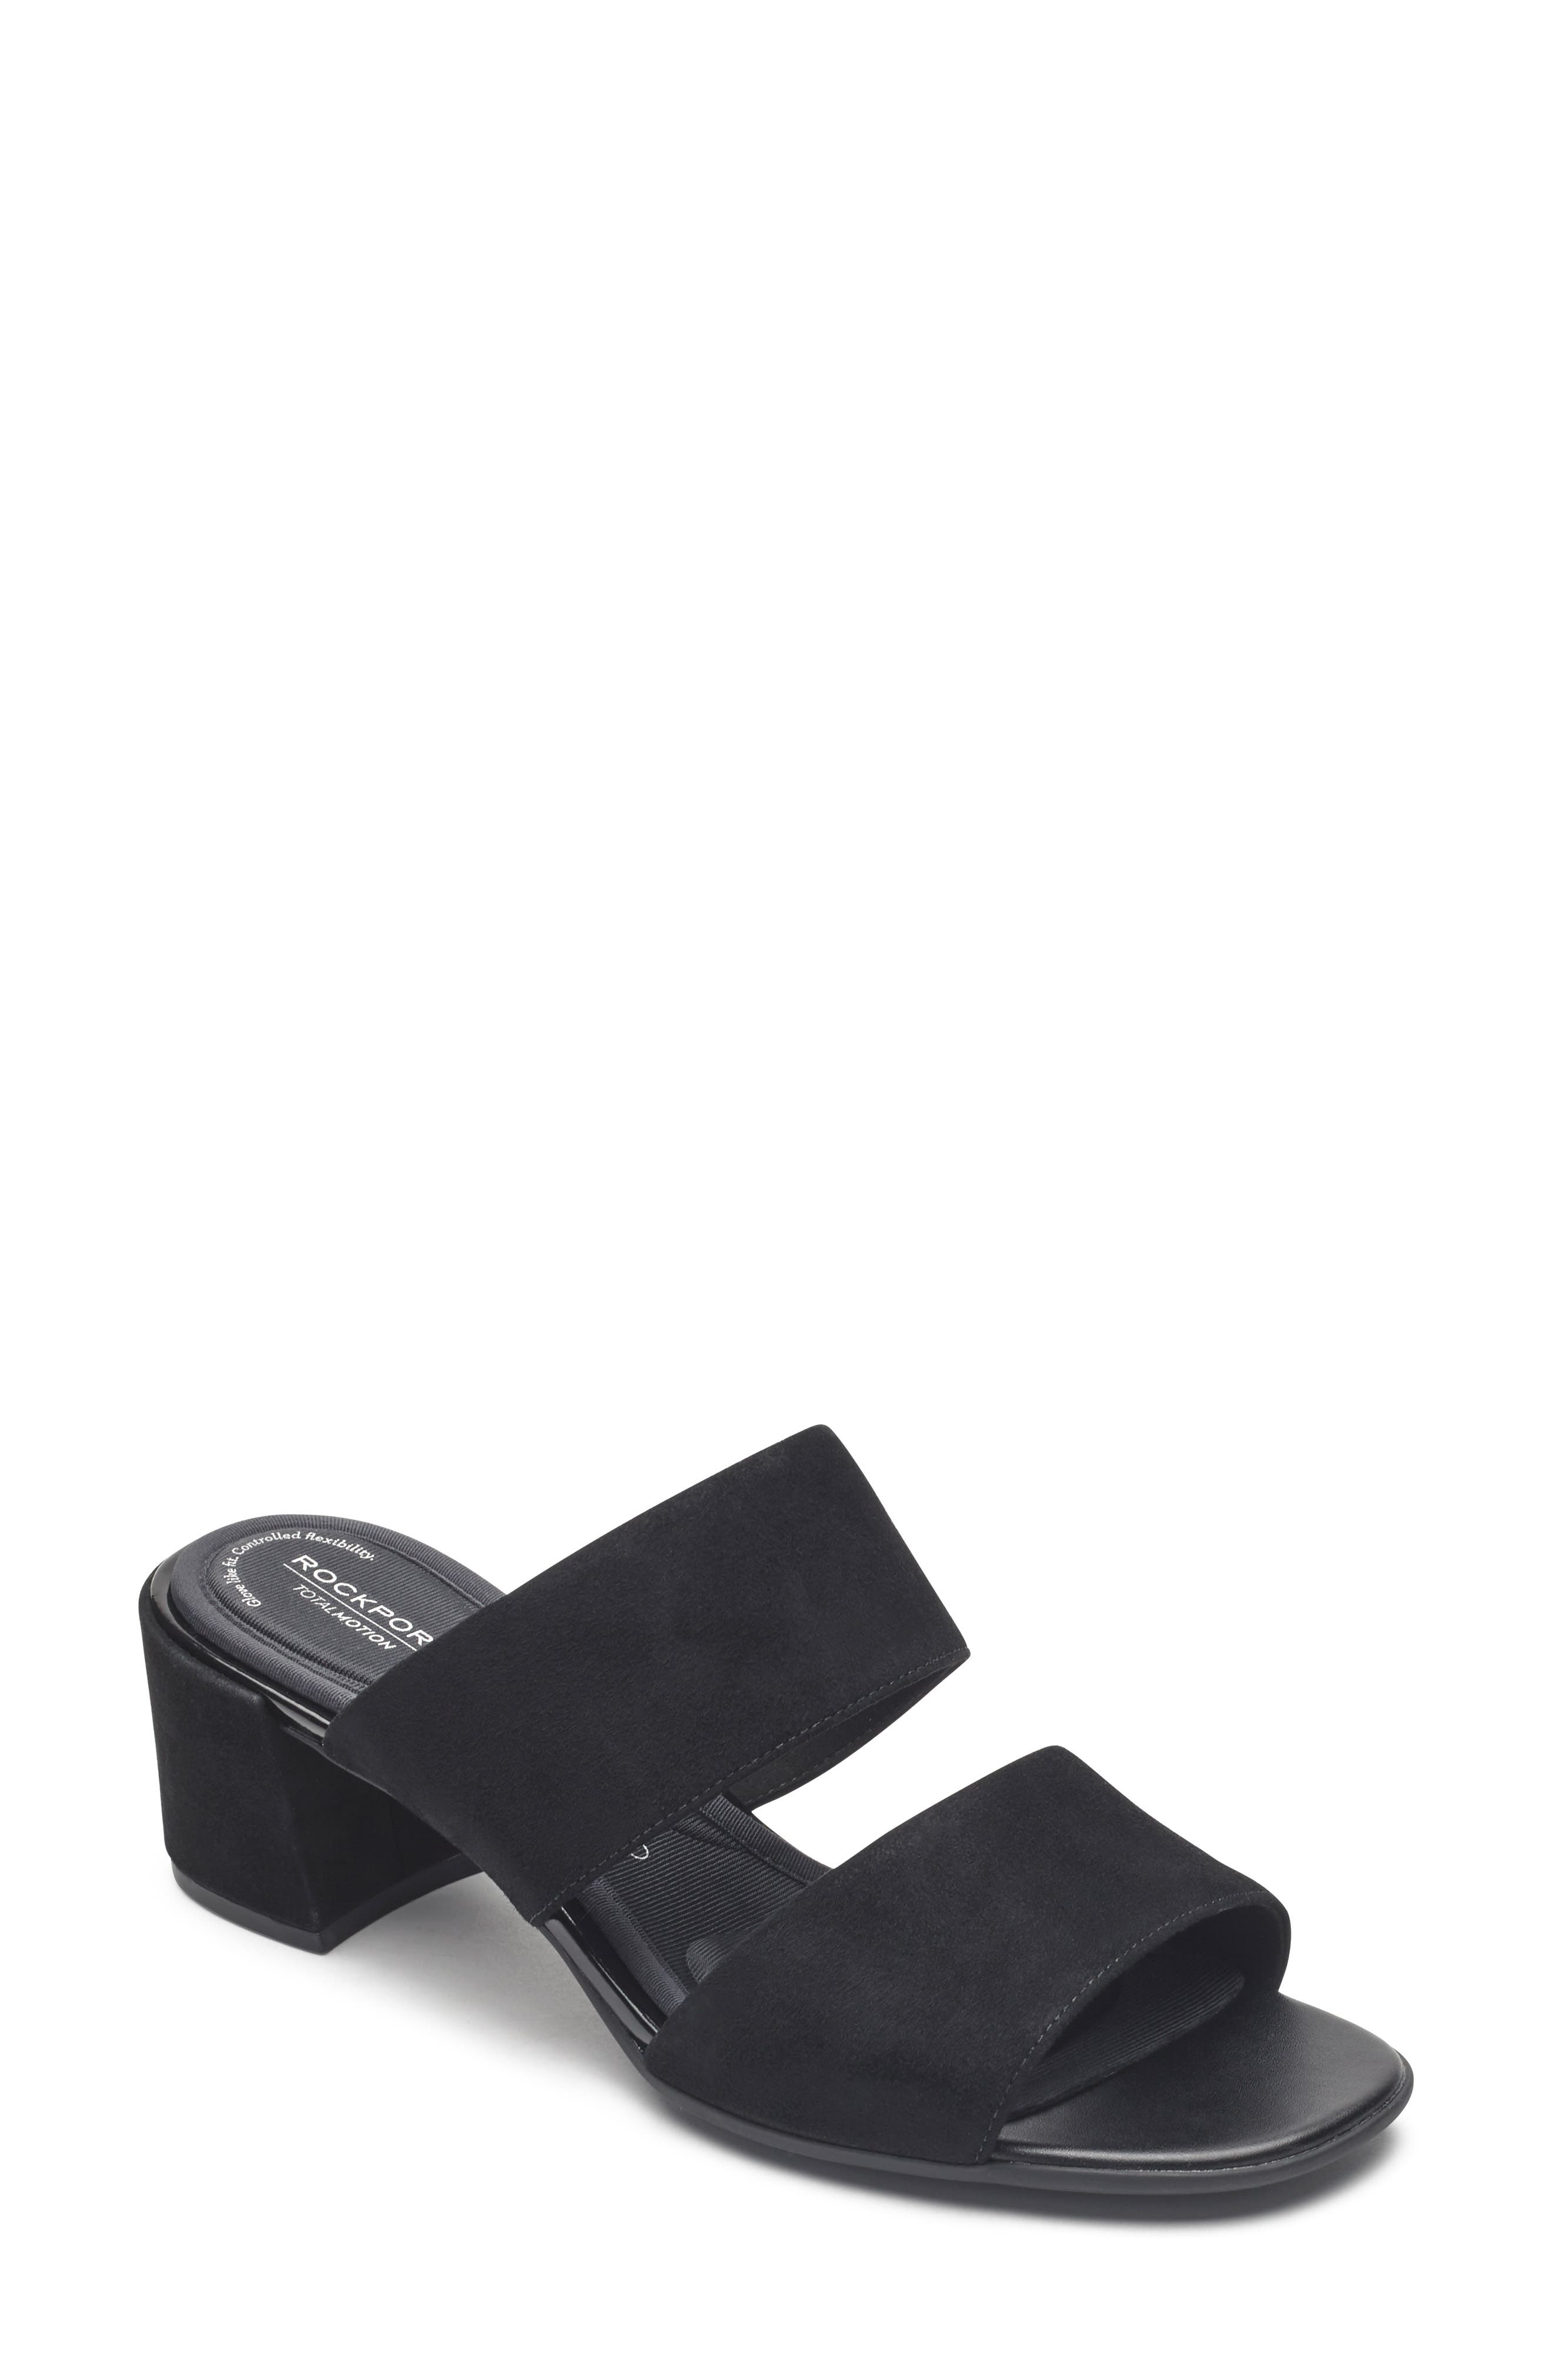 new style 5065a 4b77b Sandals Rockport Shoes for Women   Nordstrom